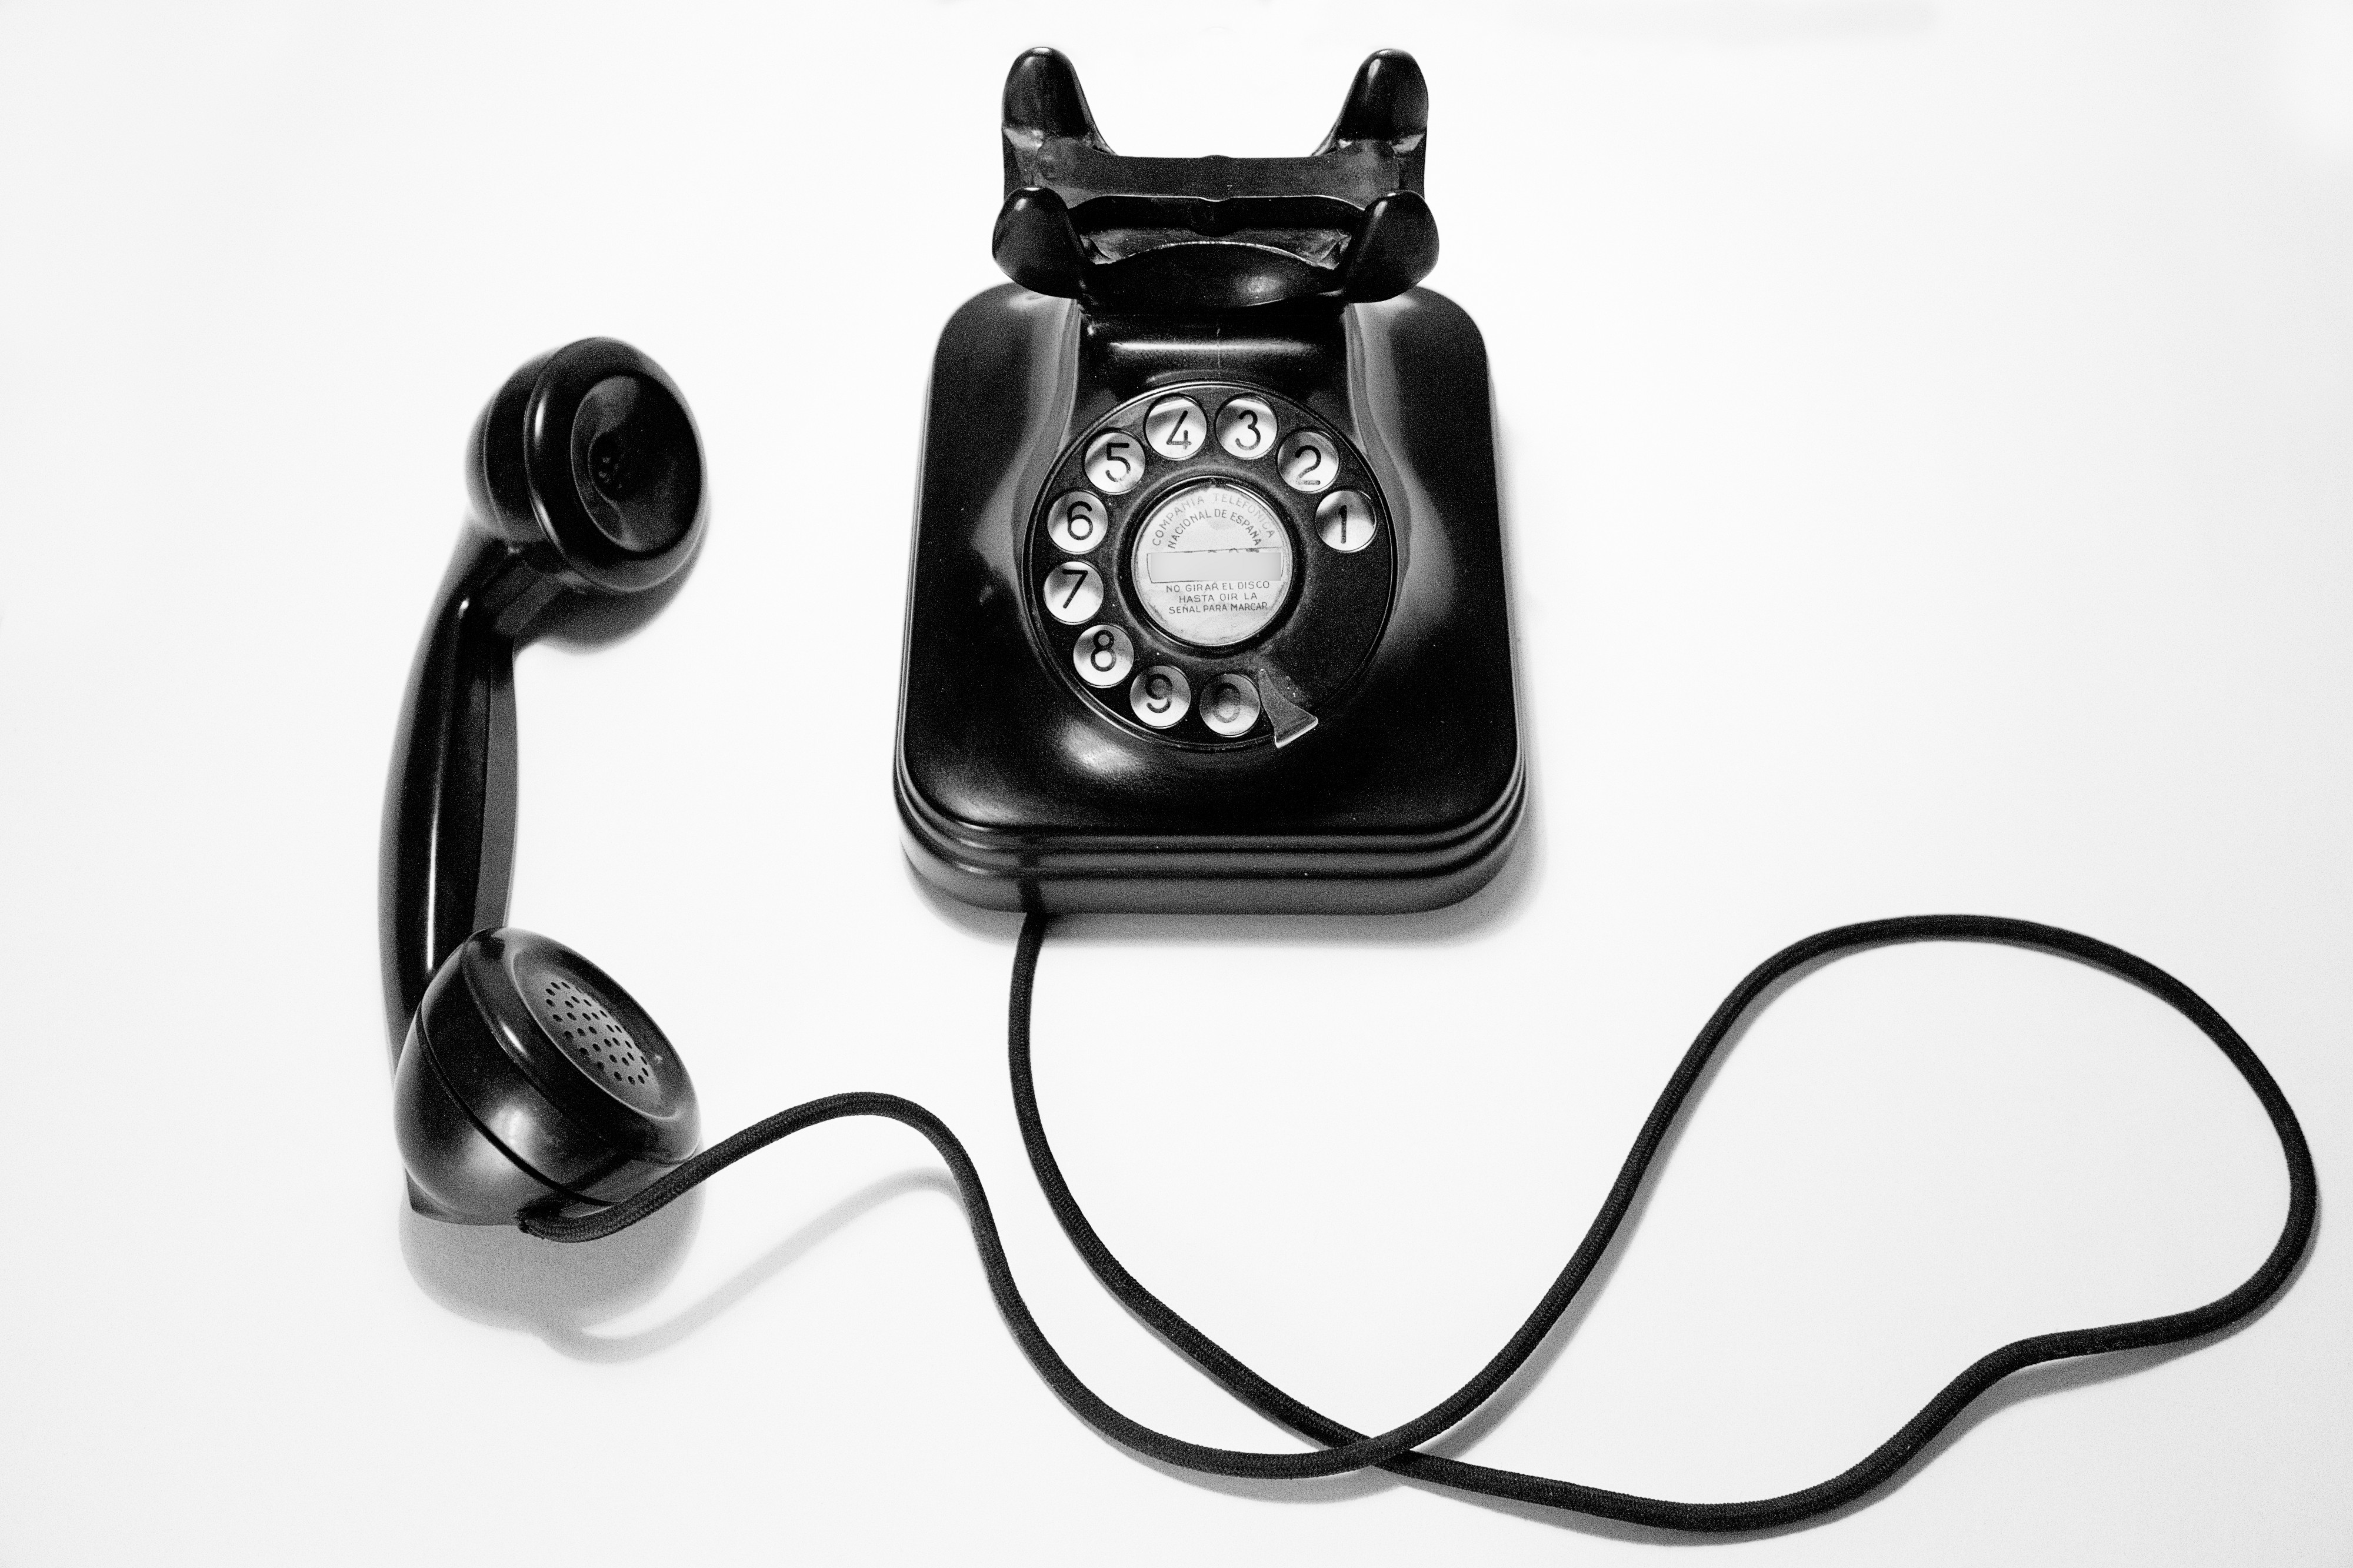 image of black rotary phone on a white background